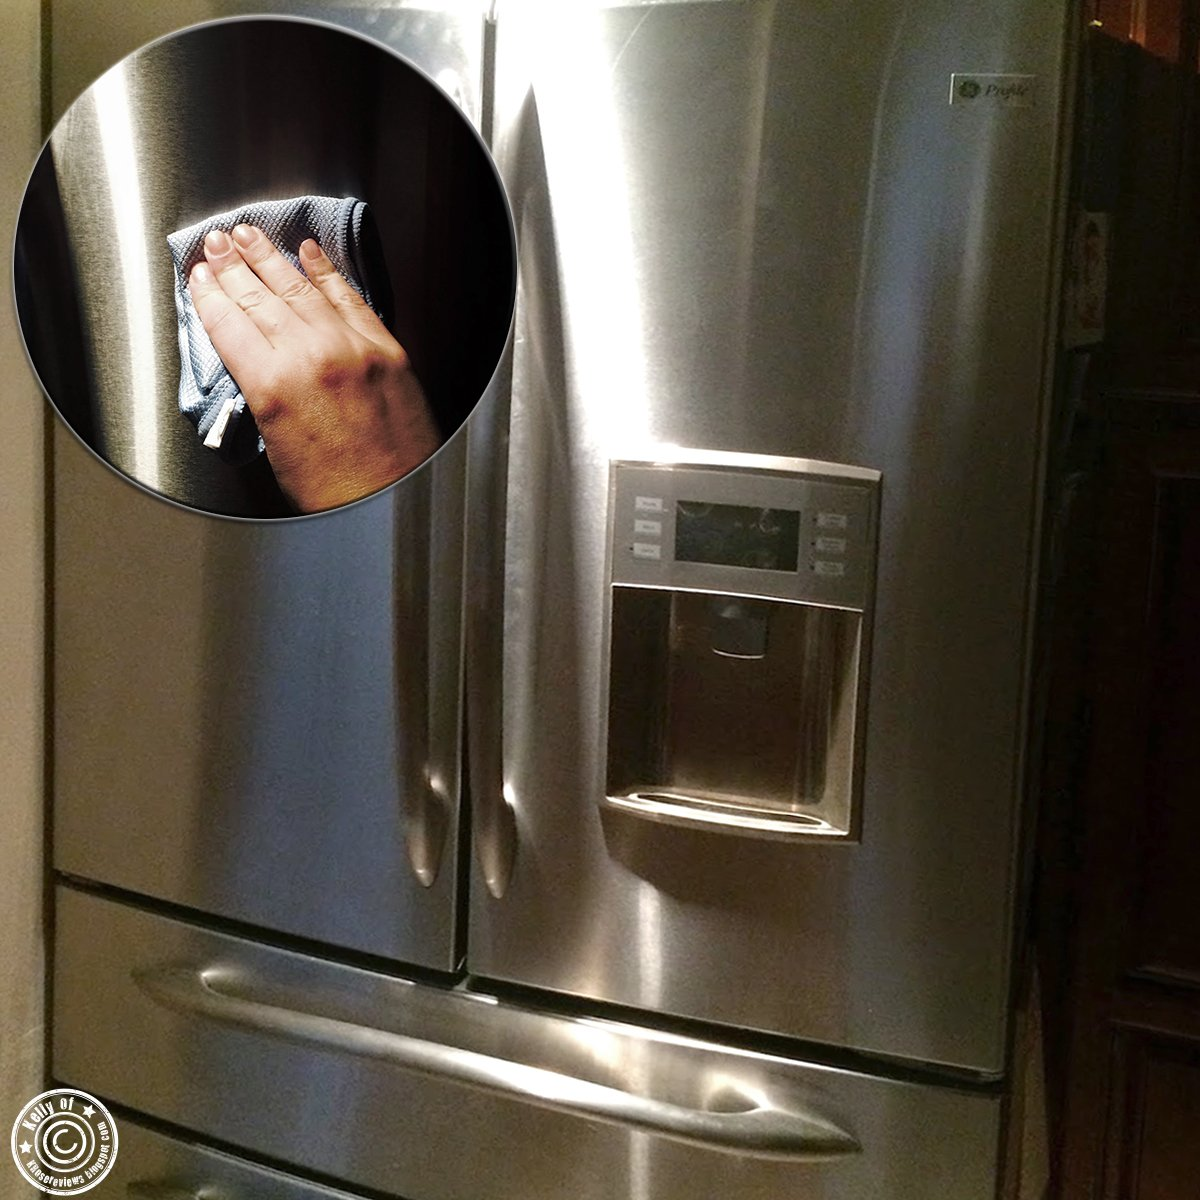 The Best Way To Clean Stainless Steel Appliances Amazoncom Pro Chef Kitchen Tools Stainless Steel Appliance